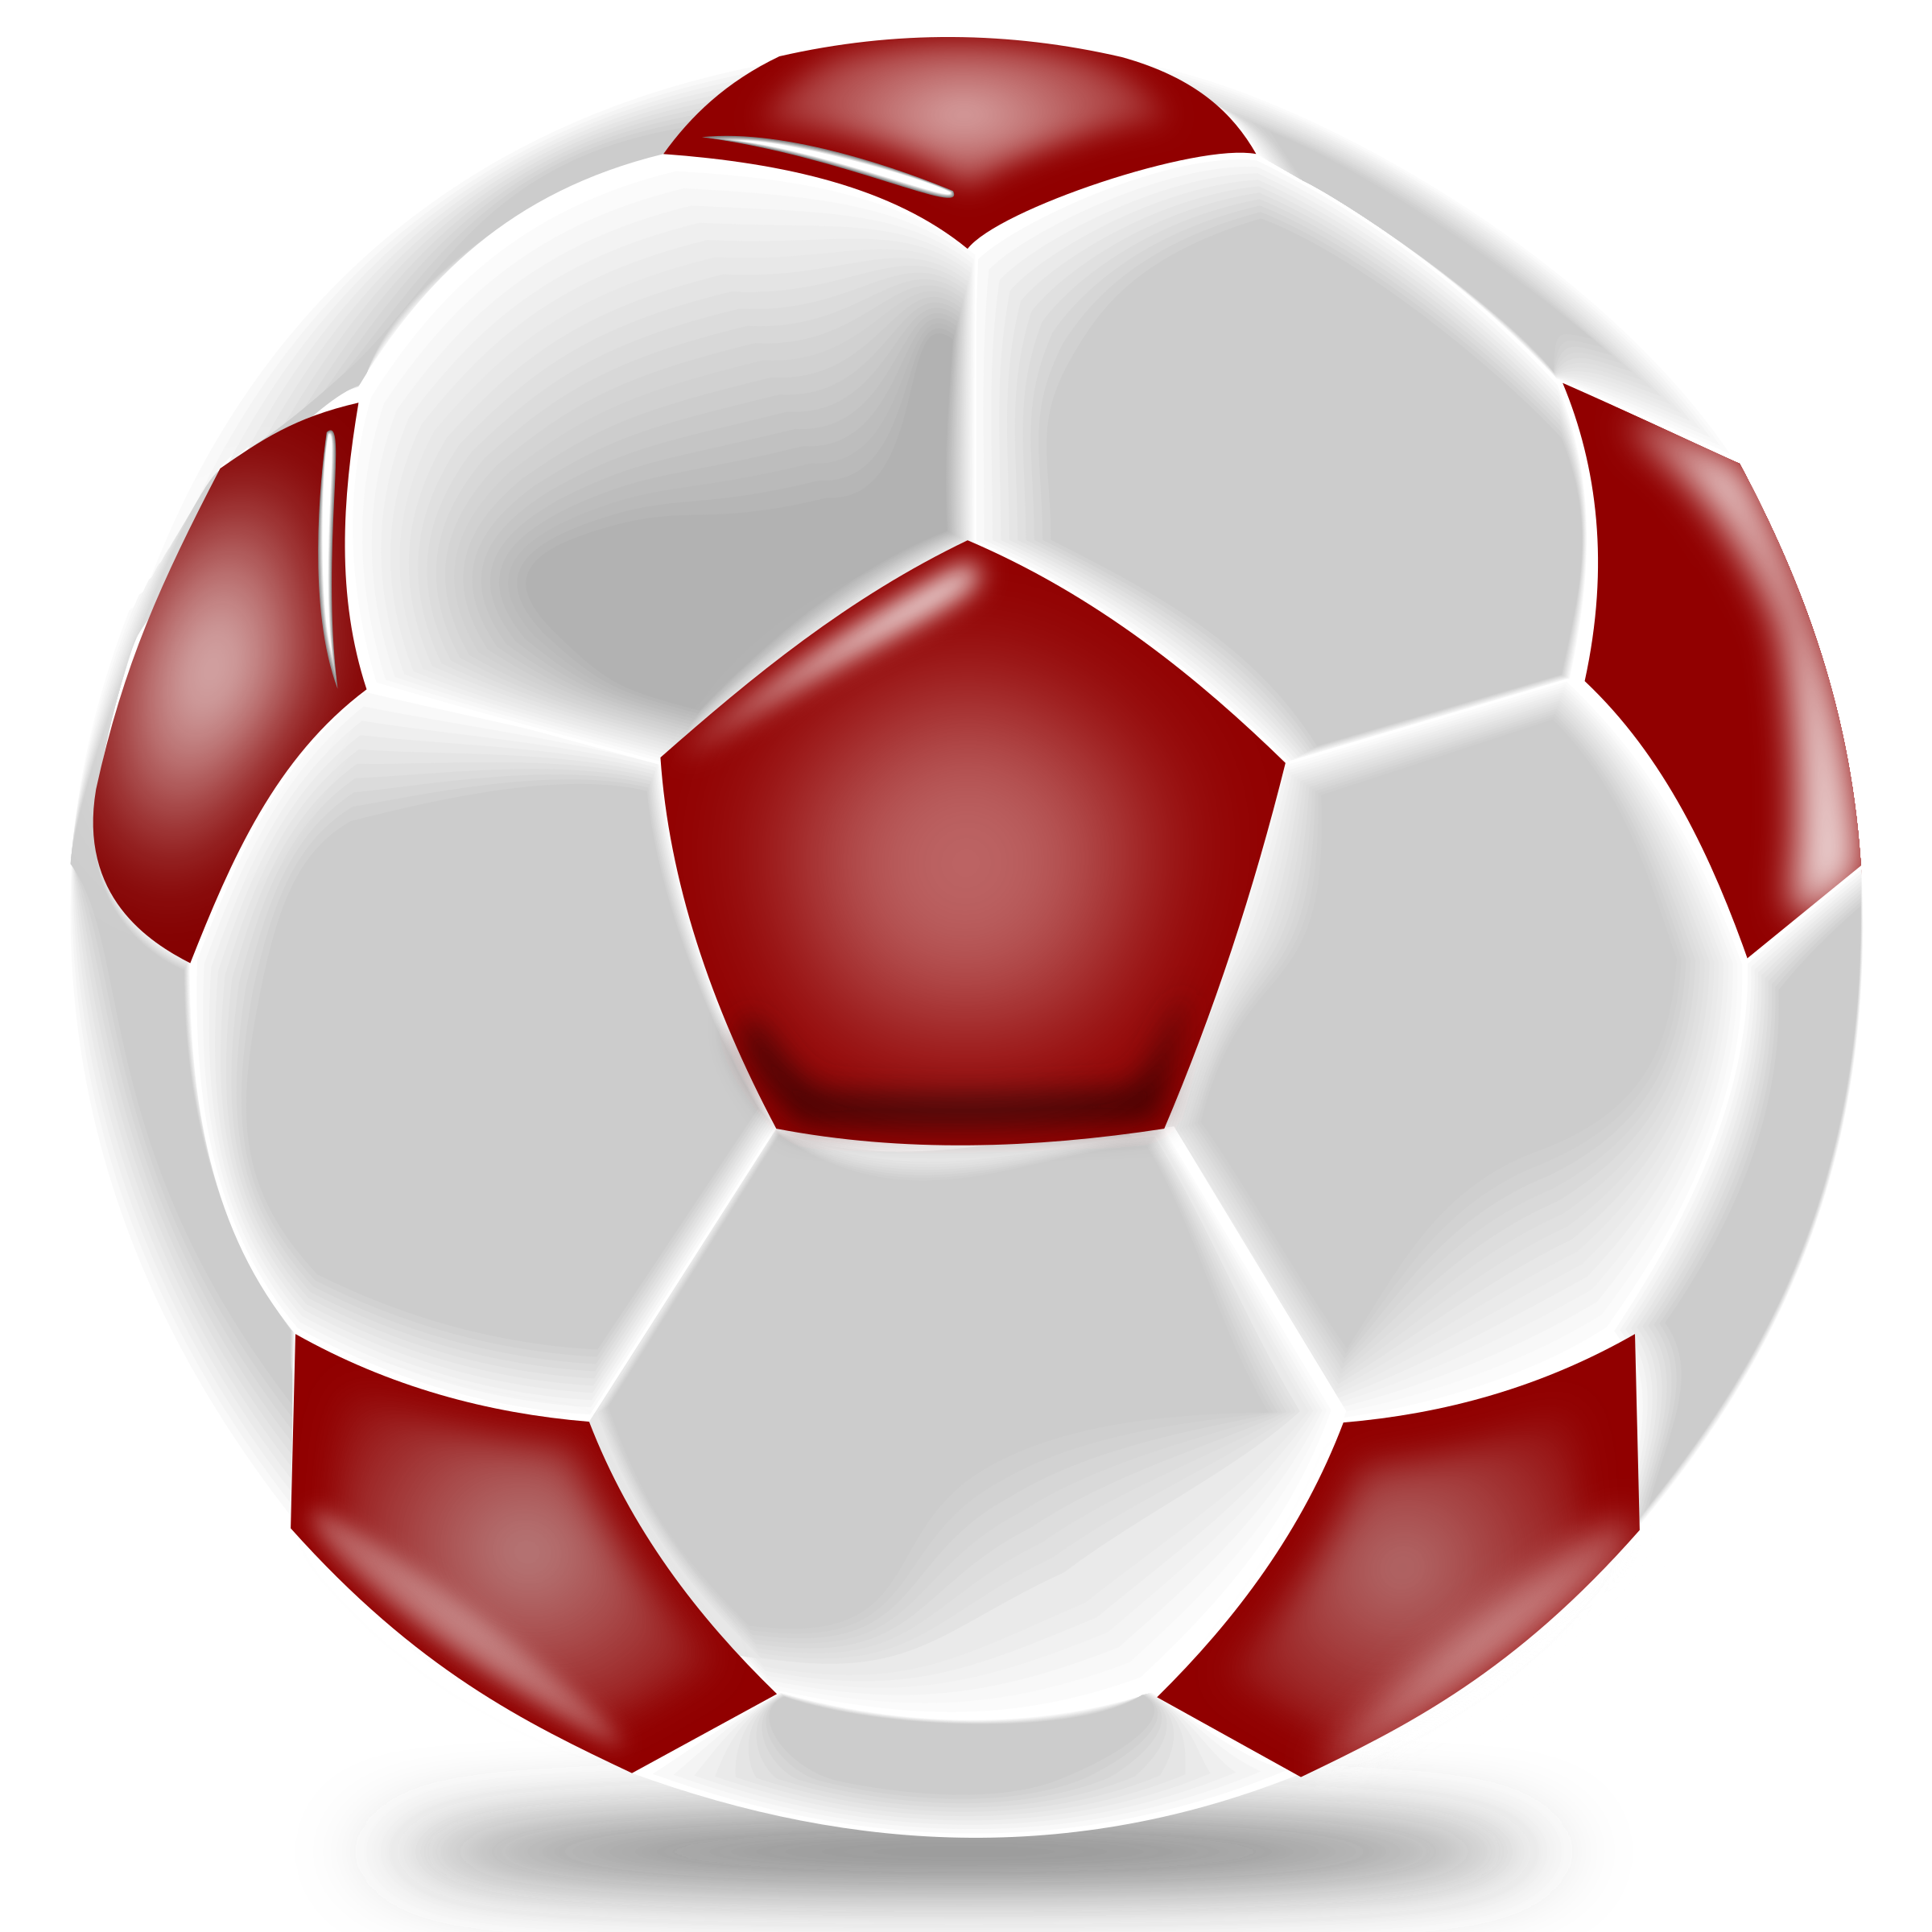 Soccer ball logo png. Realistic icons free and